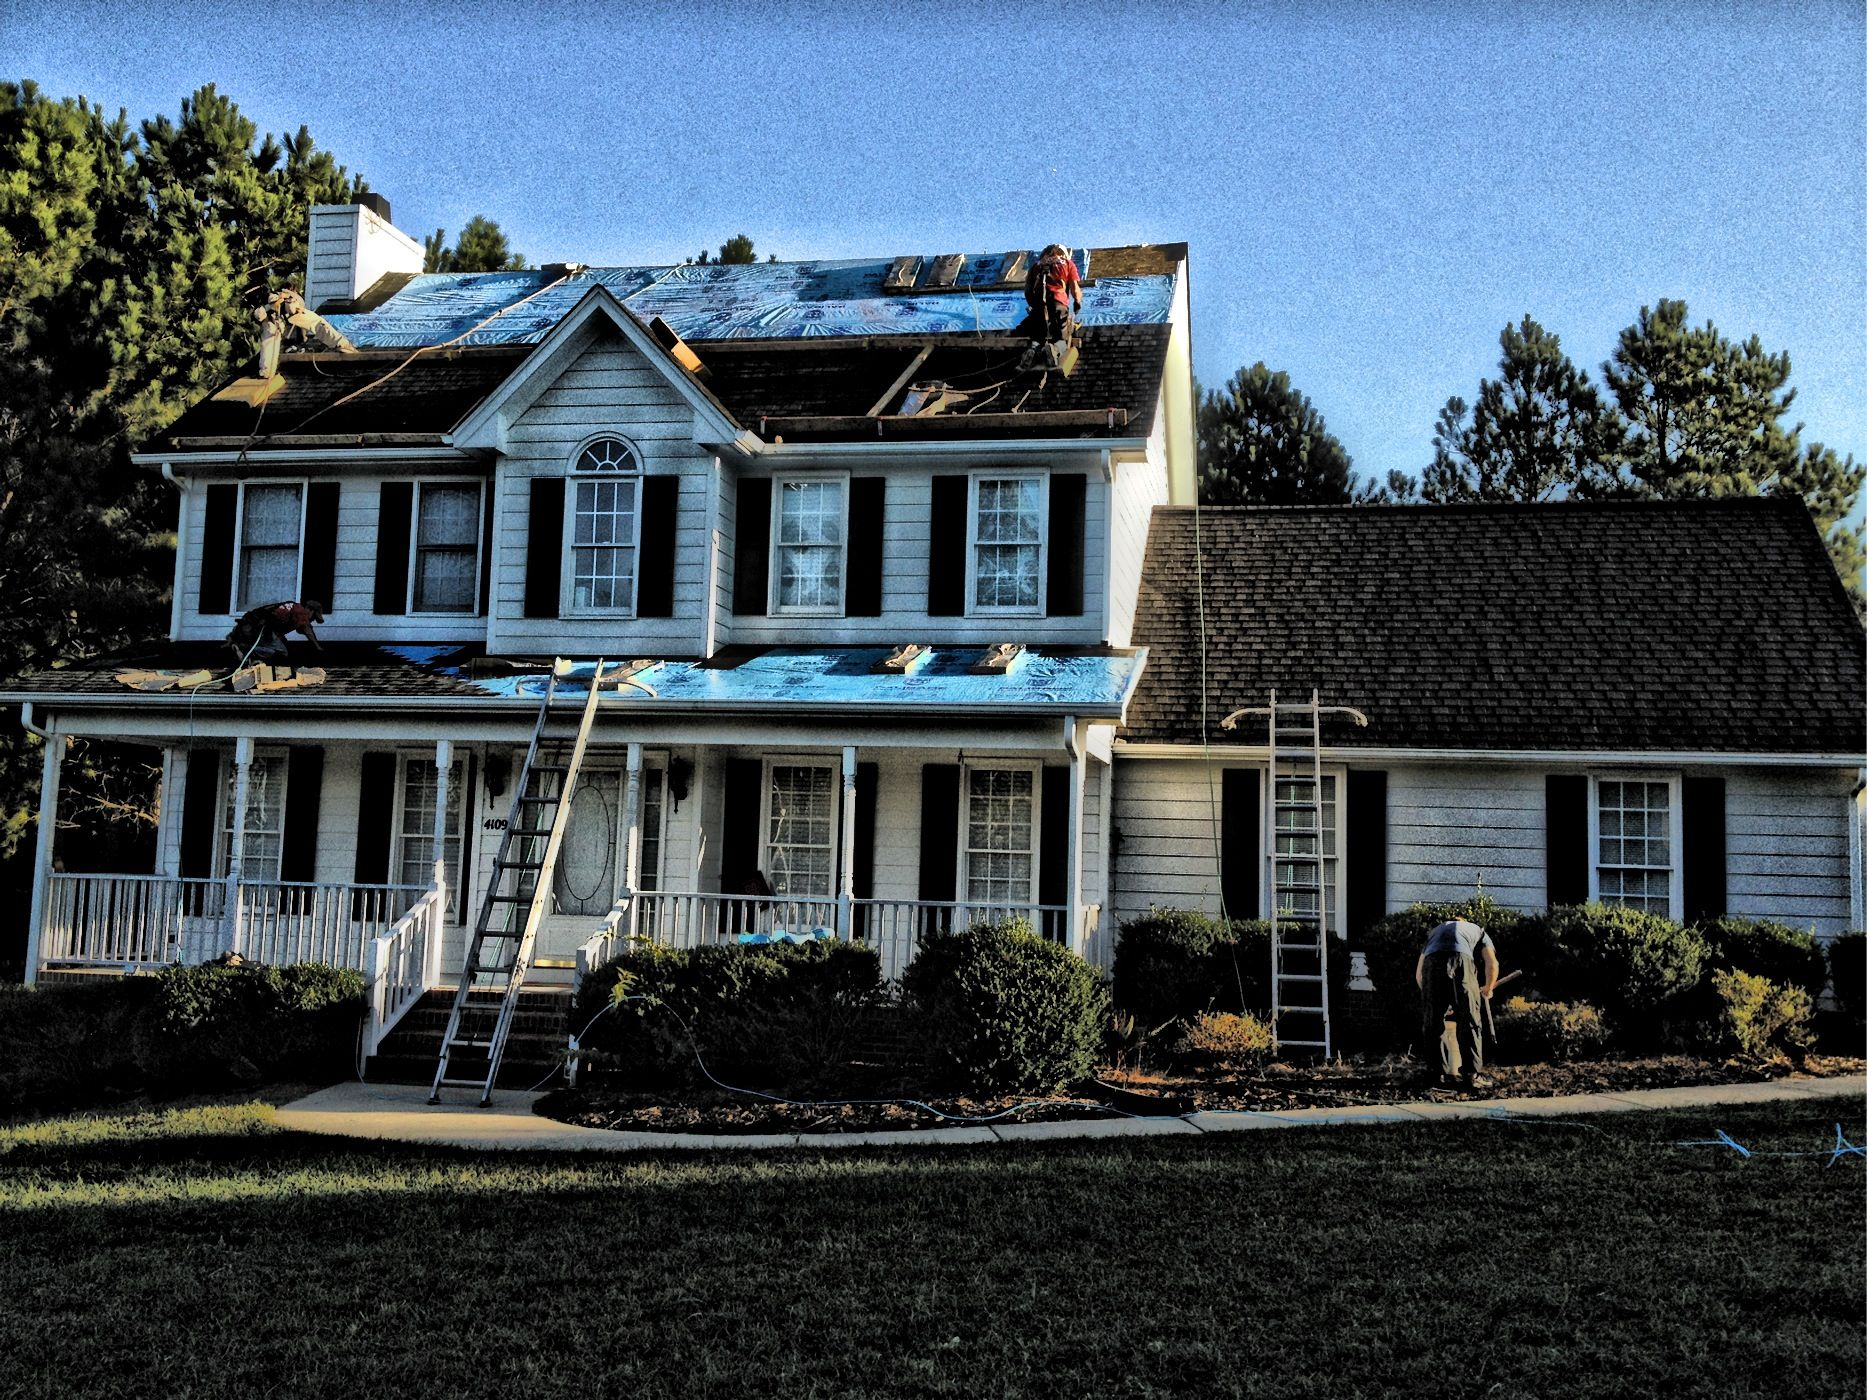 North Raleigh Roof CertainTeed Landmark Color Charcoal Black. & North Raleigh Roof CertainTeed Landmark Color: Charcoal Black ... memphite.com